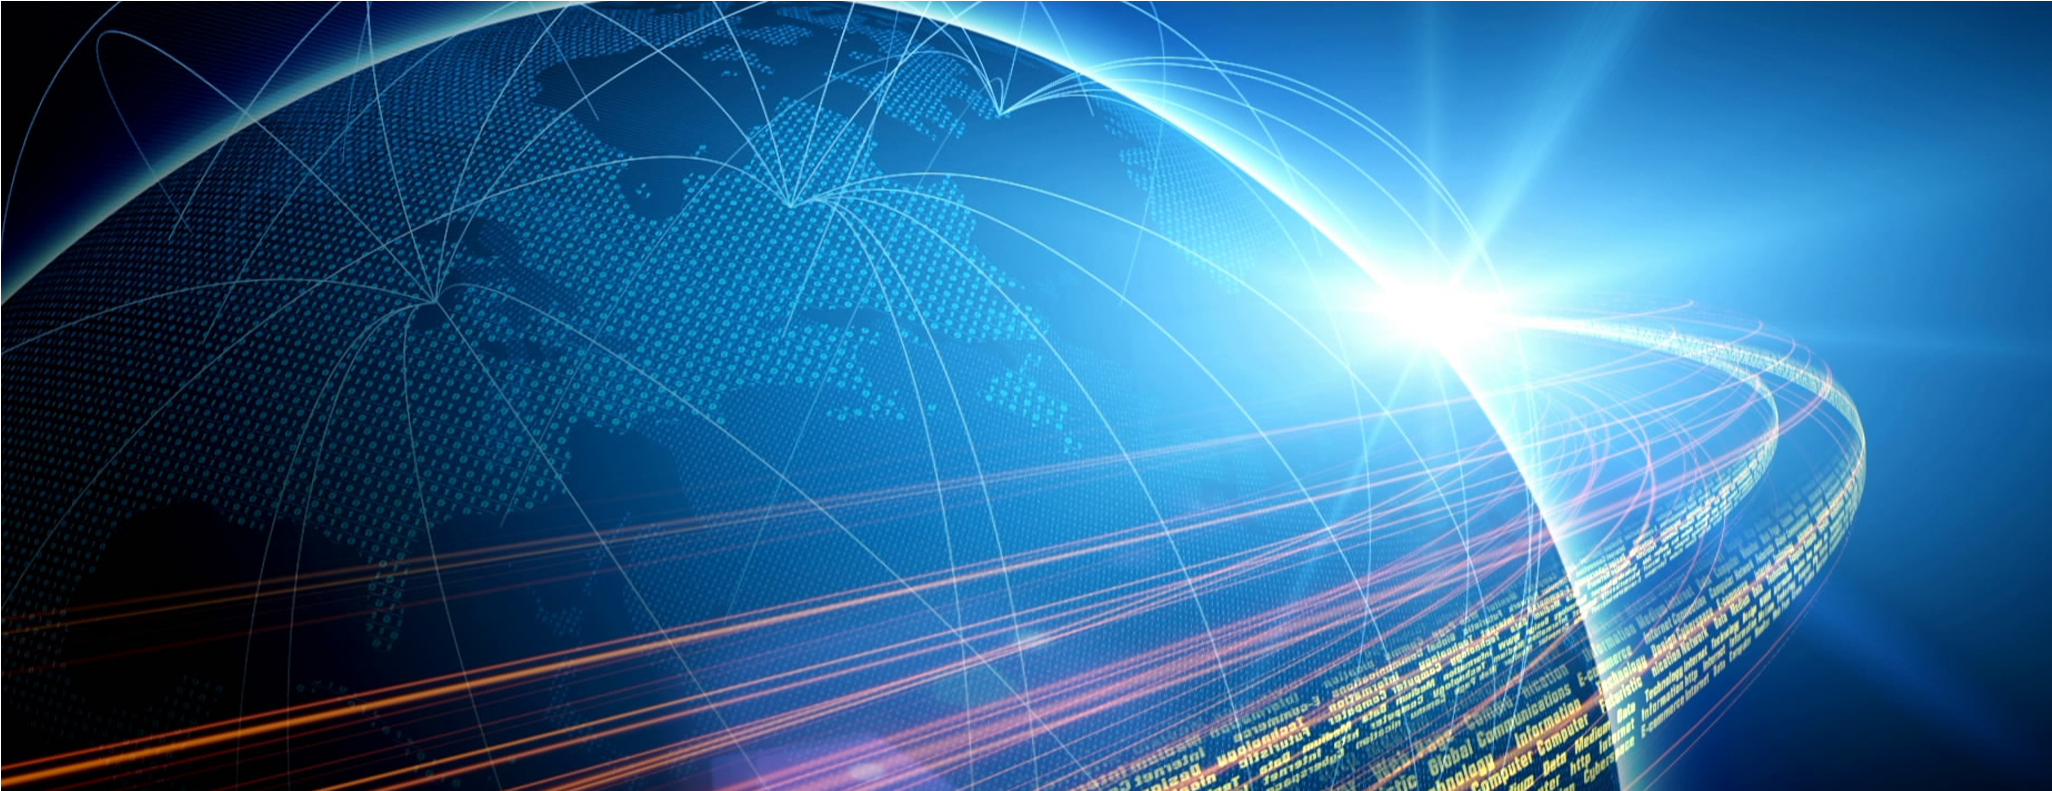 Now, get 4x faster performance than previous Wi-Fi 5 solutions